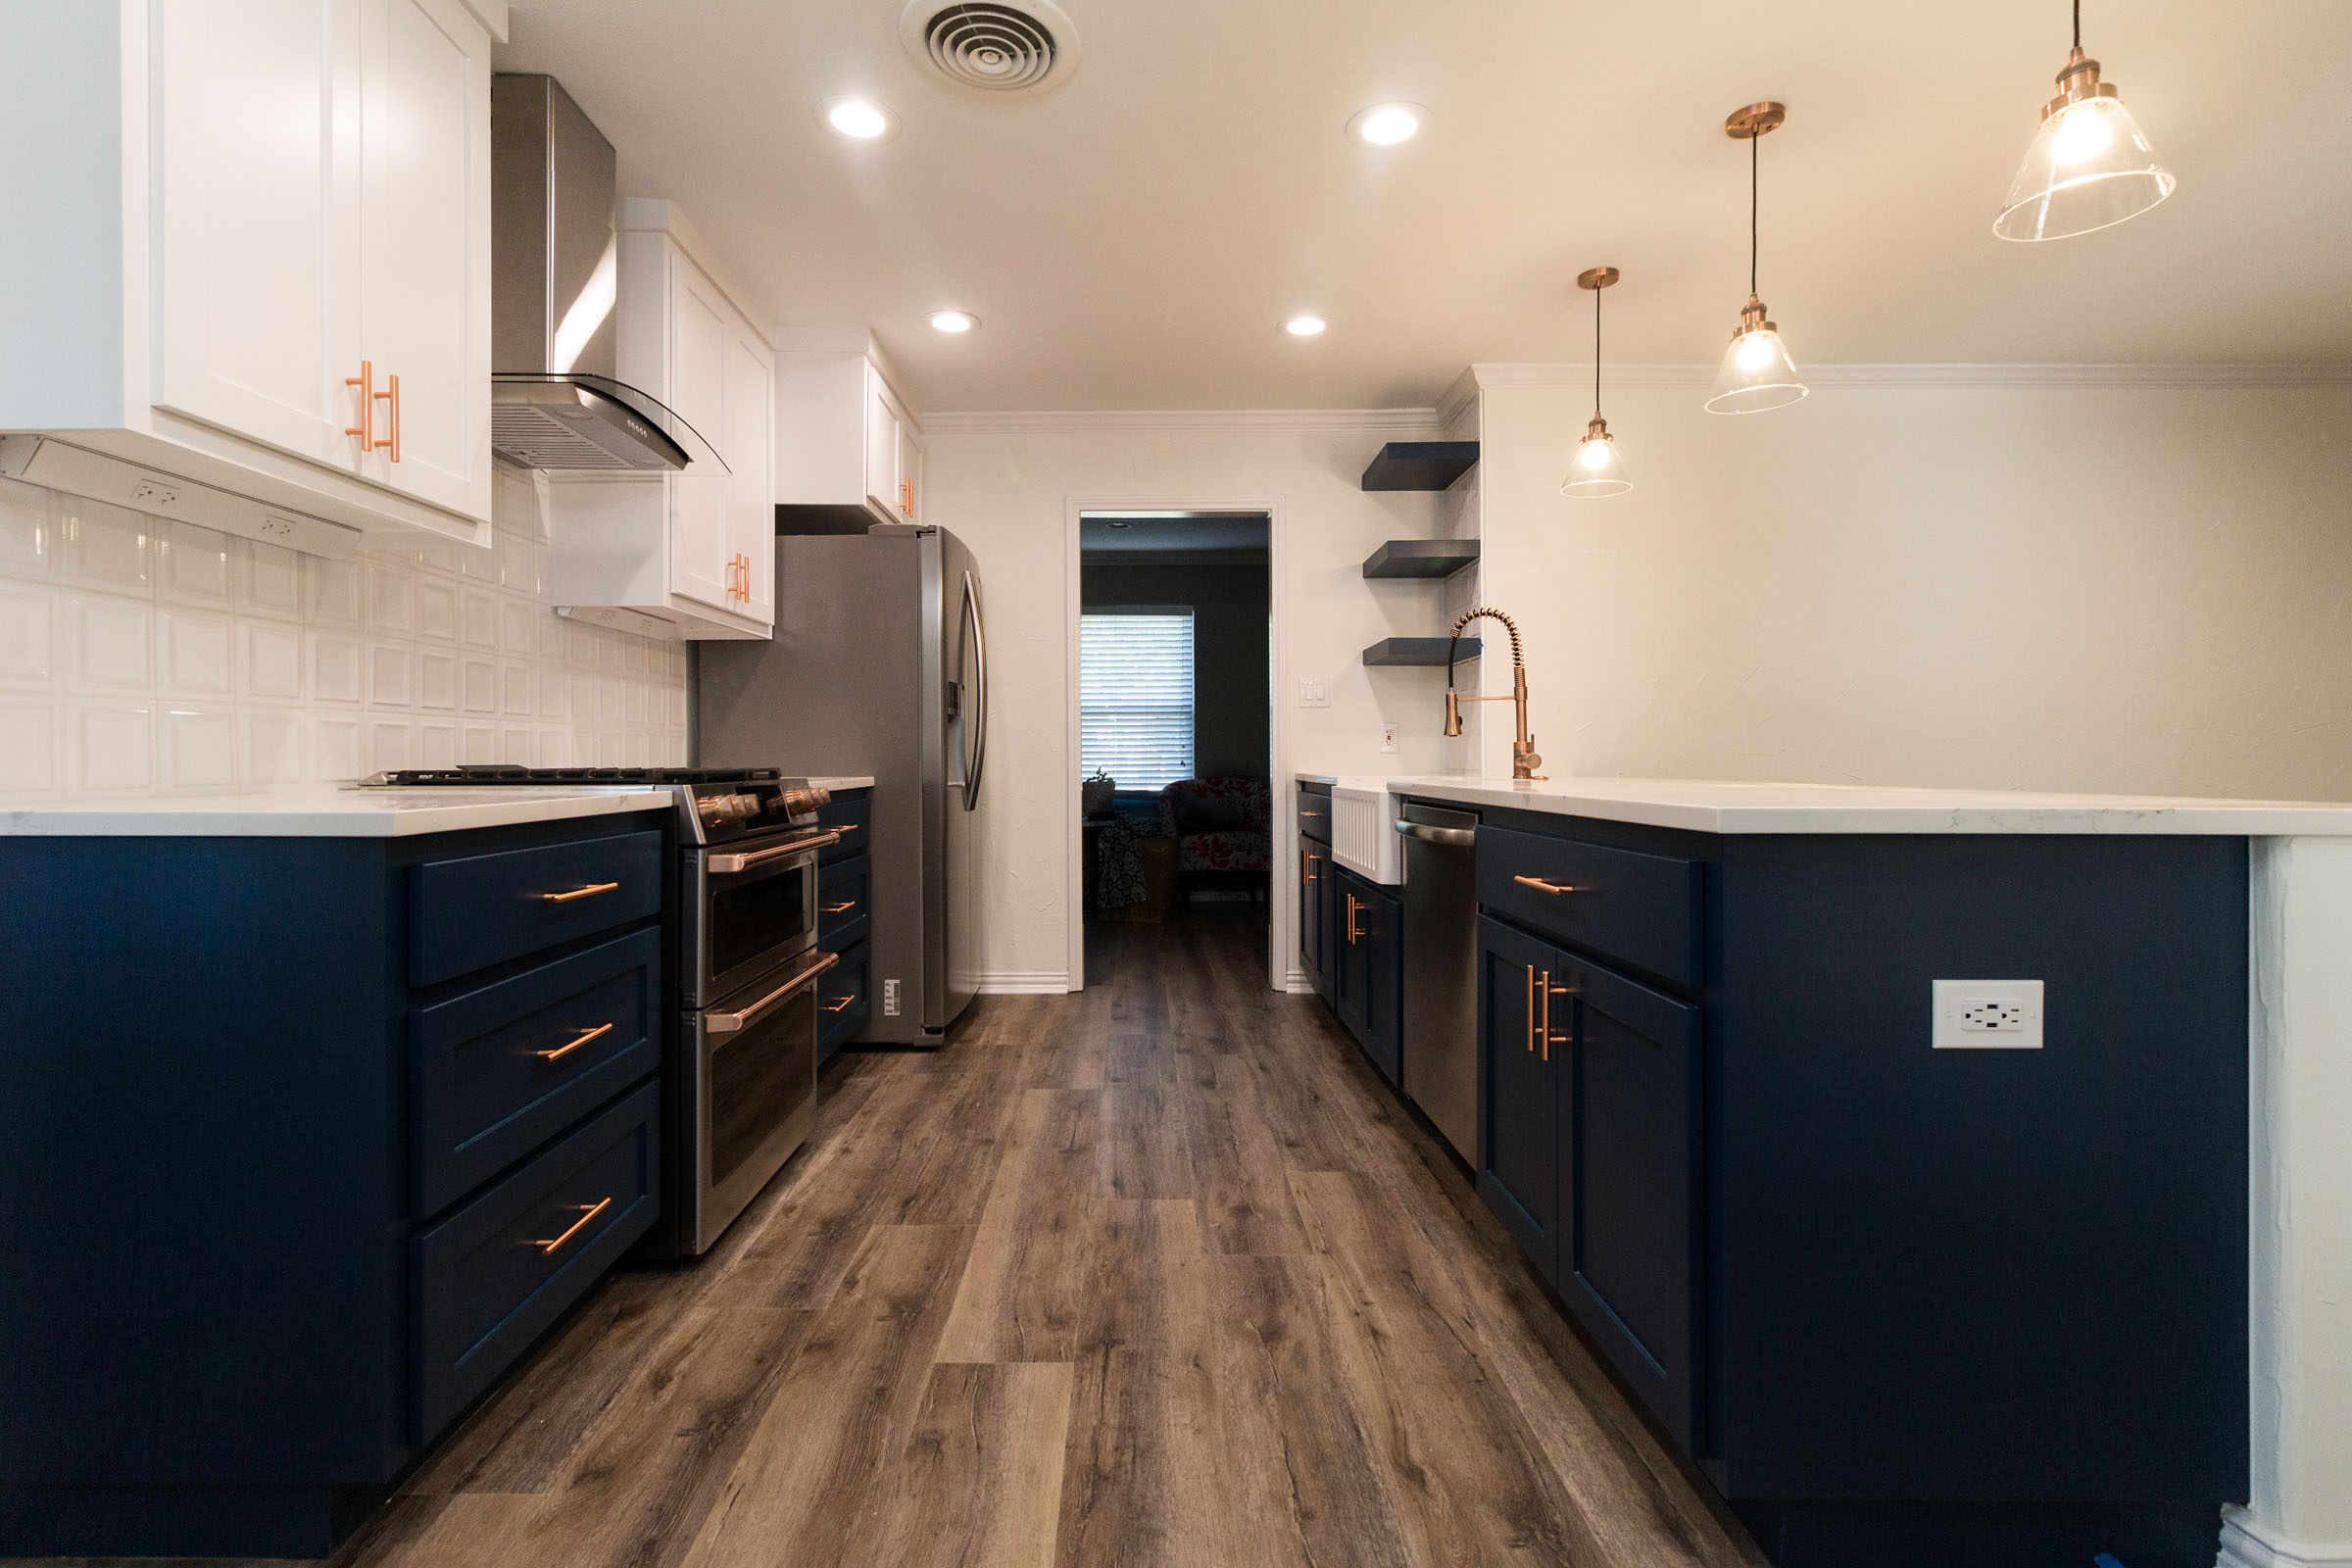 Kitchen renovation with colored cabinets and copper appliances